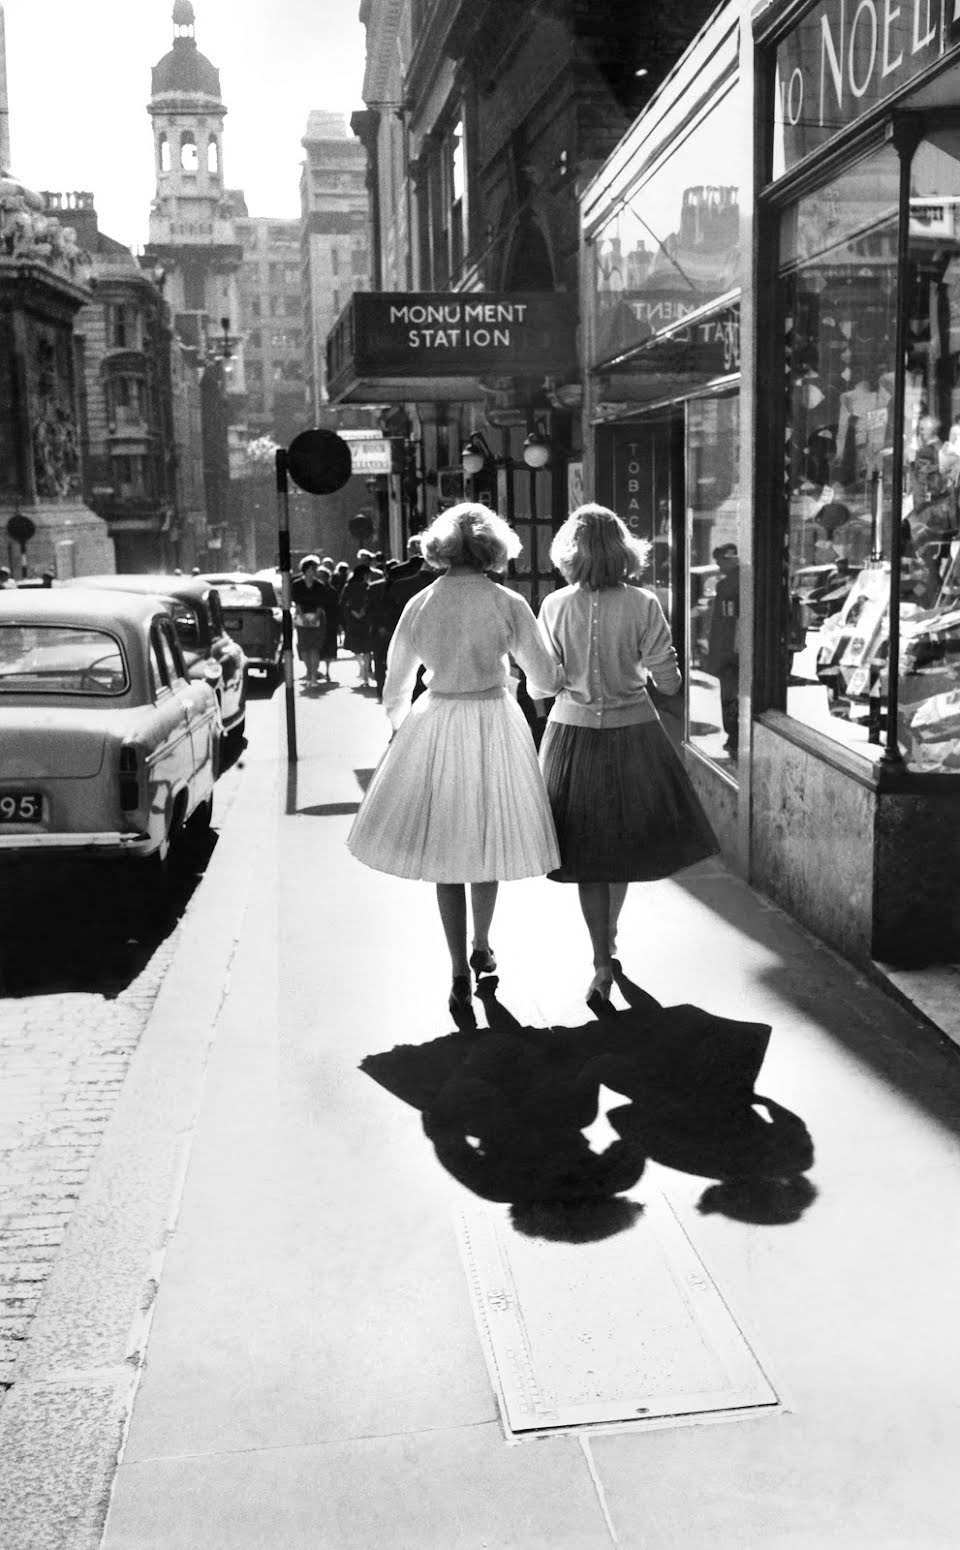 Twin sisters walking towards the Church of St. Magnus the Martyr in London in the 1950s